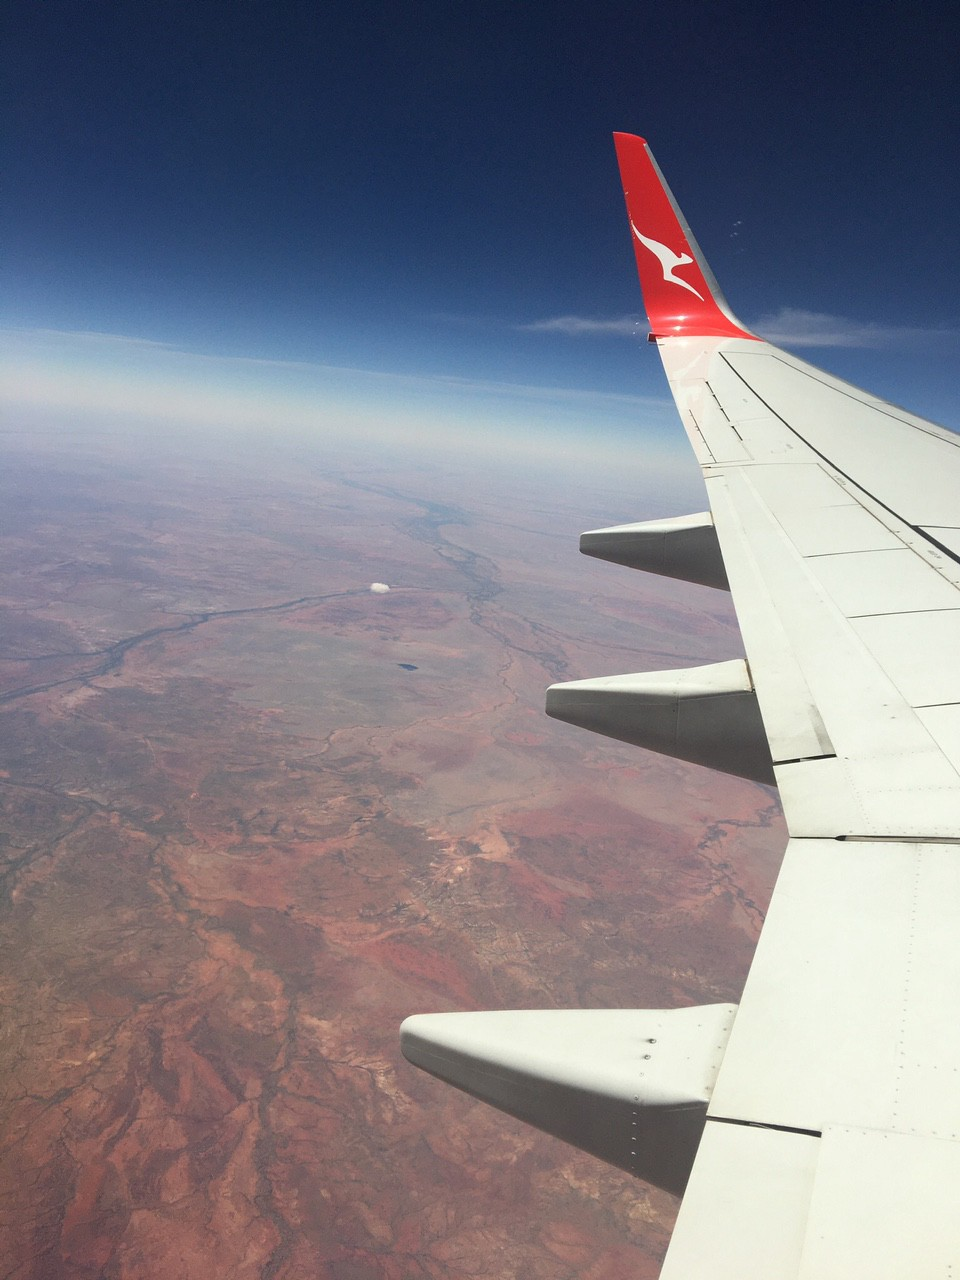 View from a Qantas plane